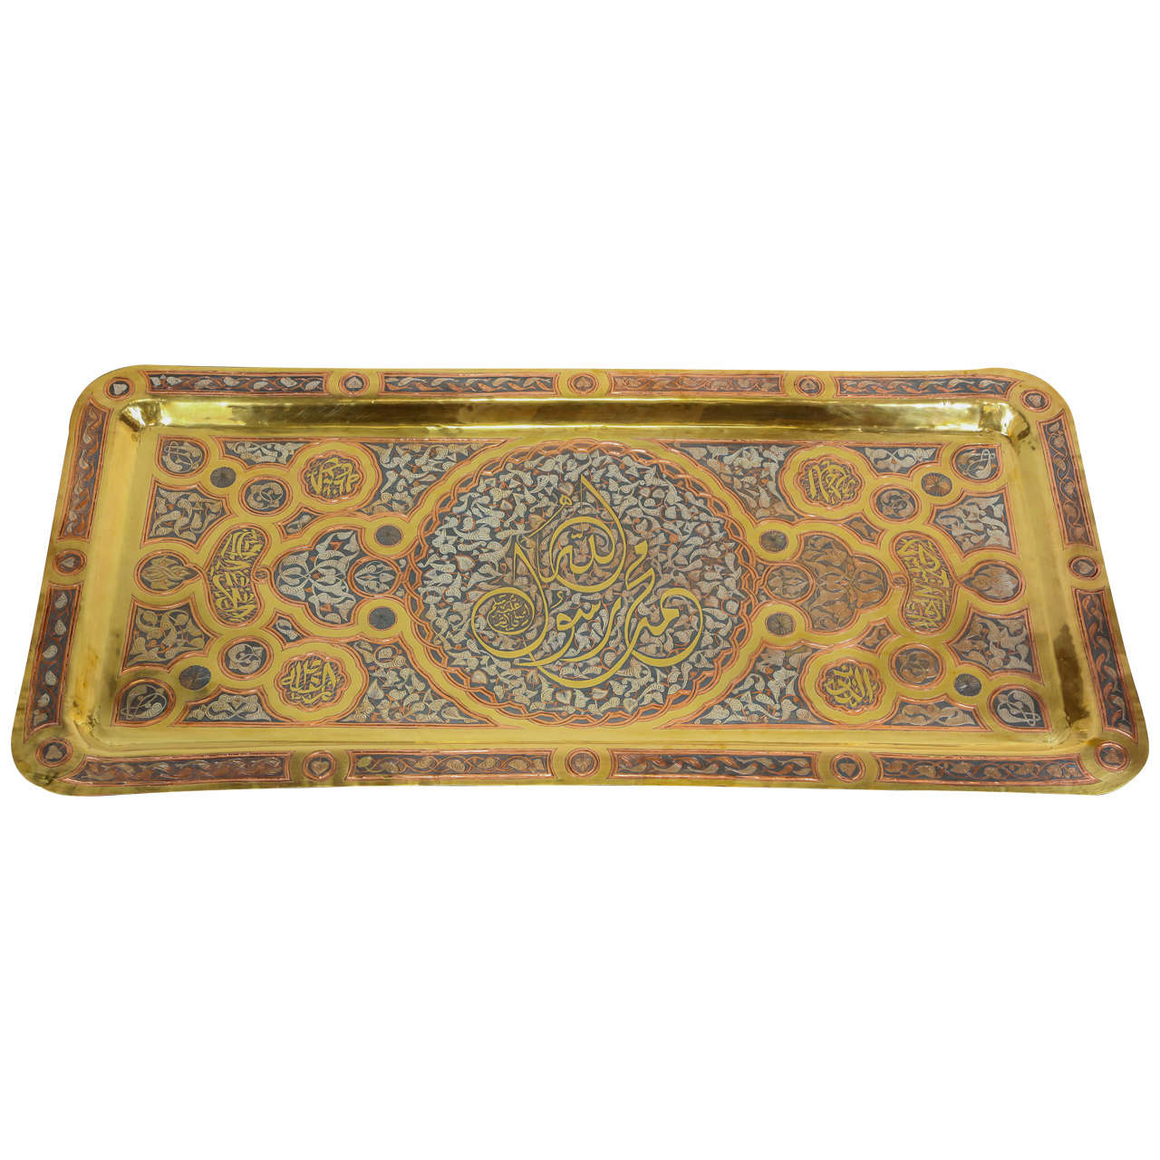 Brass Tray with Arabic Calligraphy